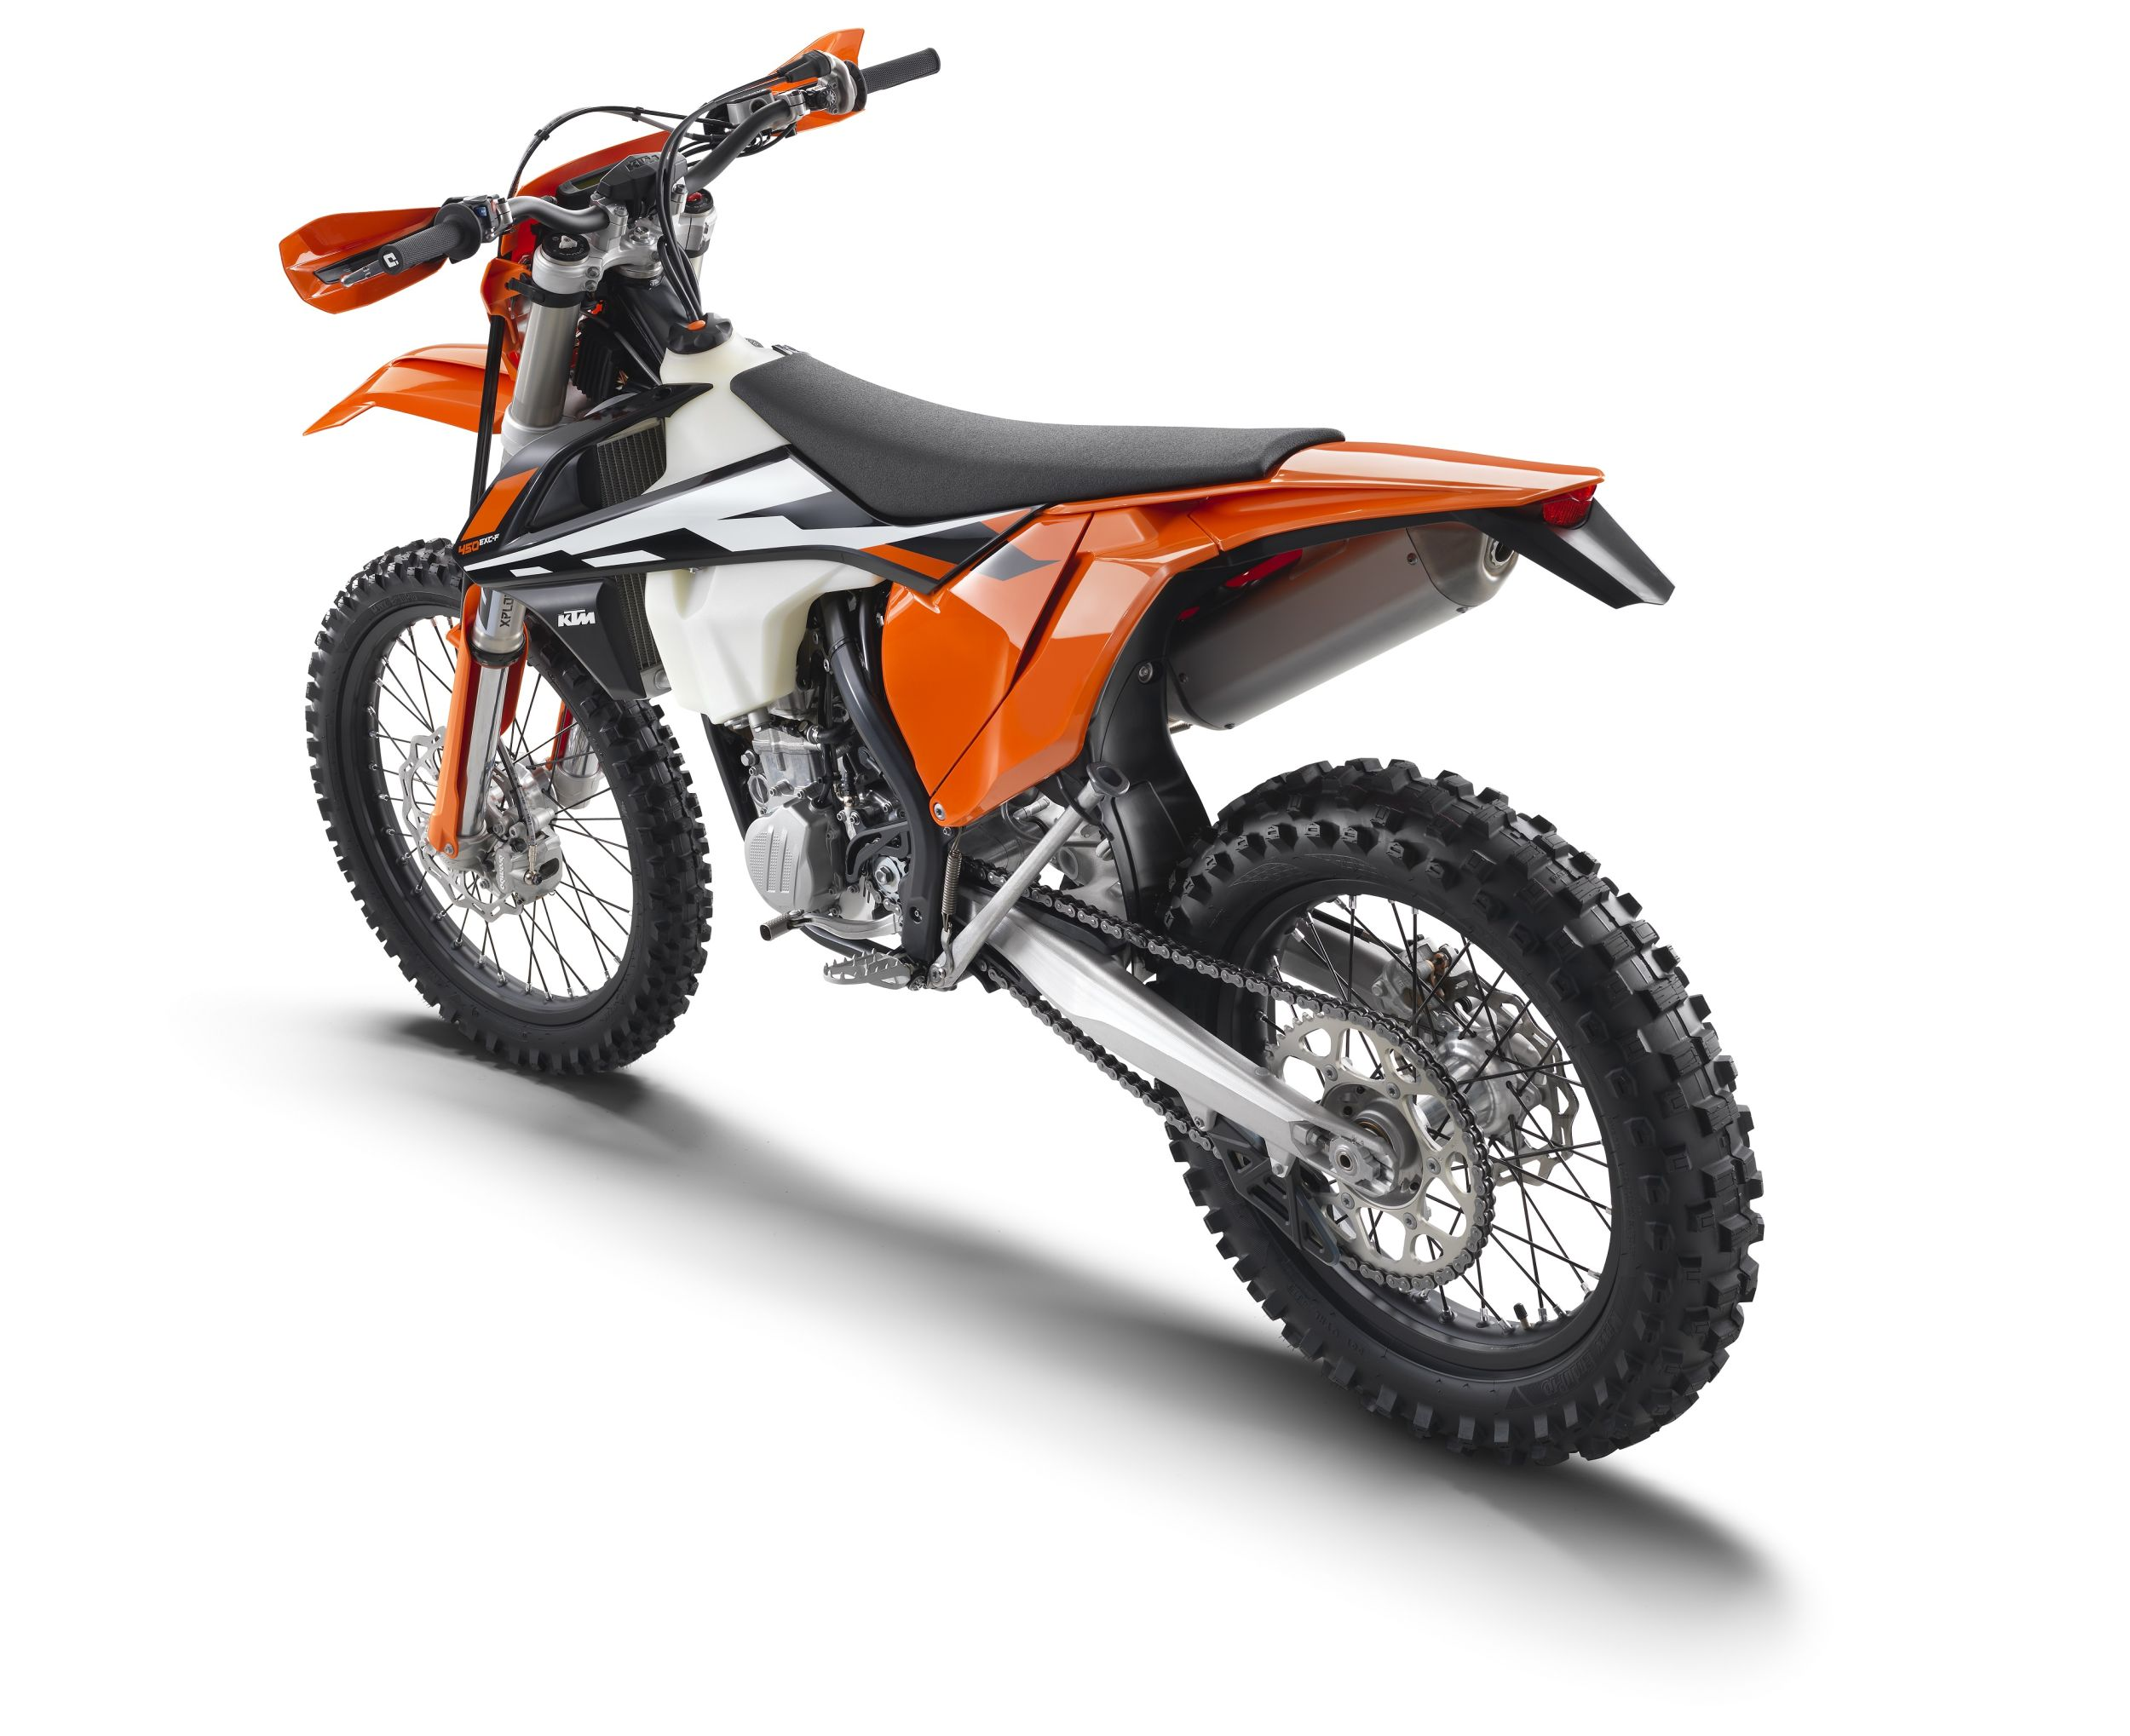 KTM 450 EXC-F - All technical Data of the Model 450 EXC-F from KTM